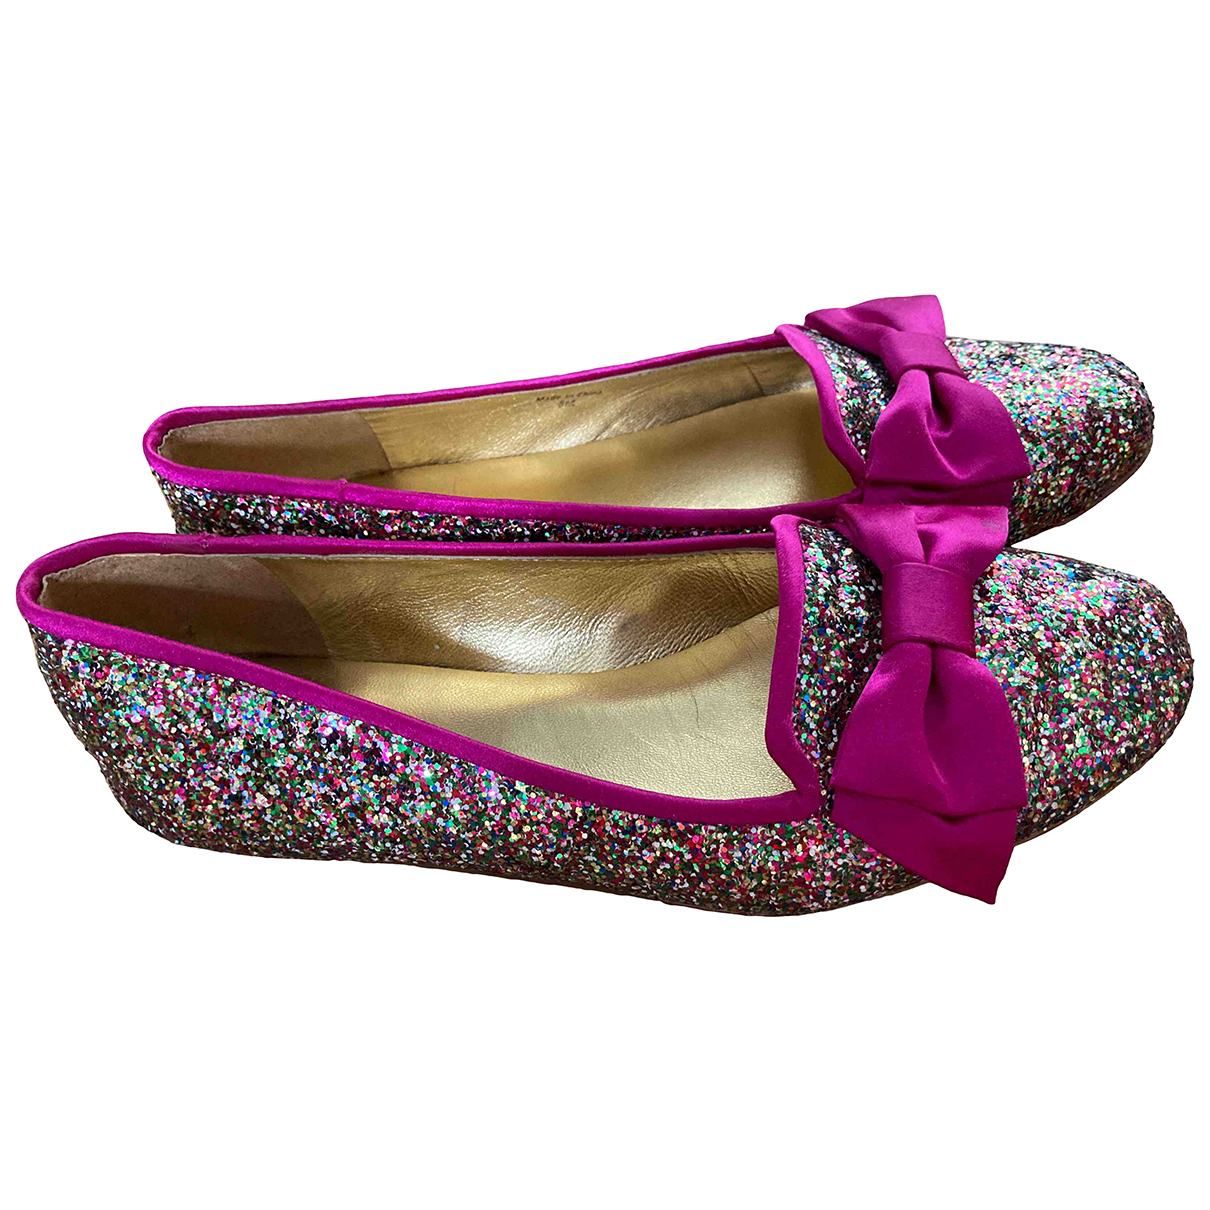 Kate Spade \N Multicolour Leather Ballet flats for Women 6 US